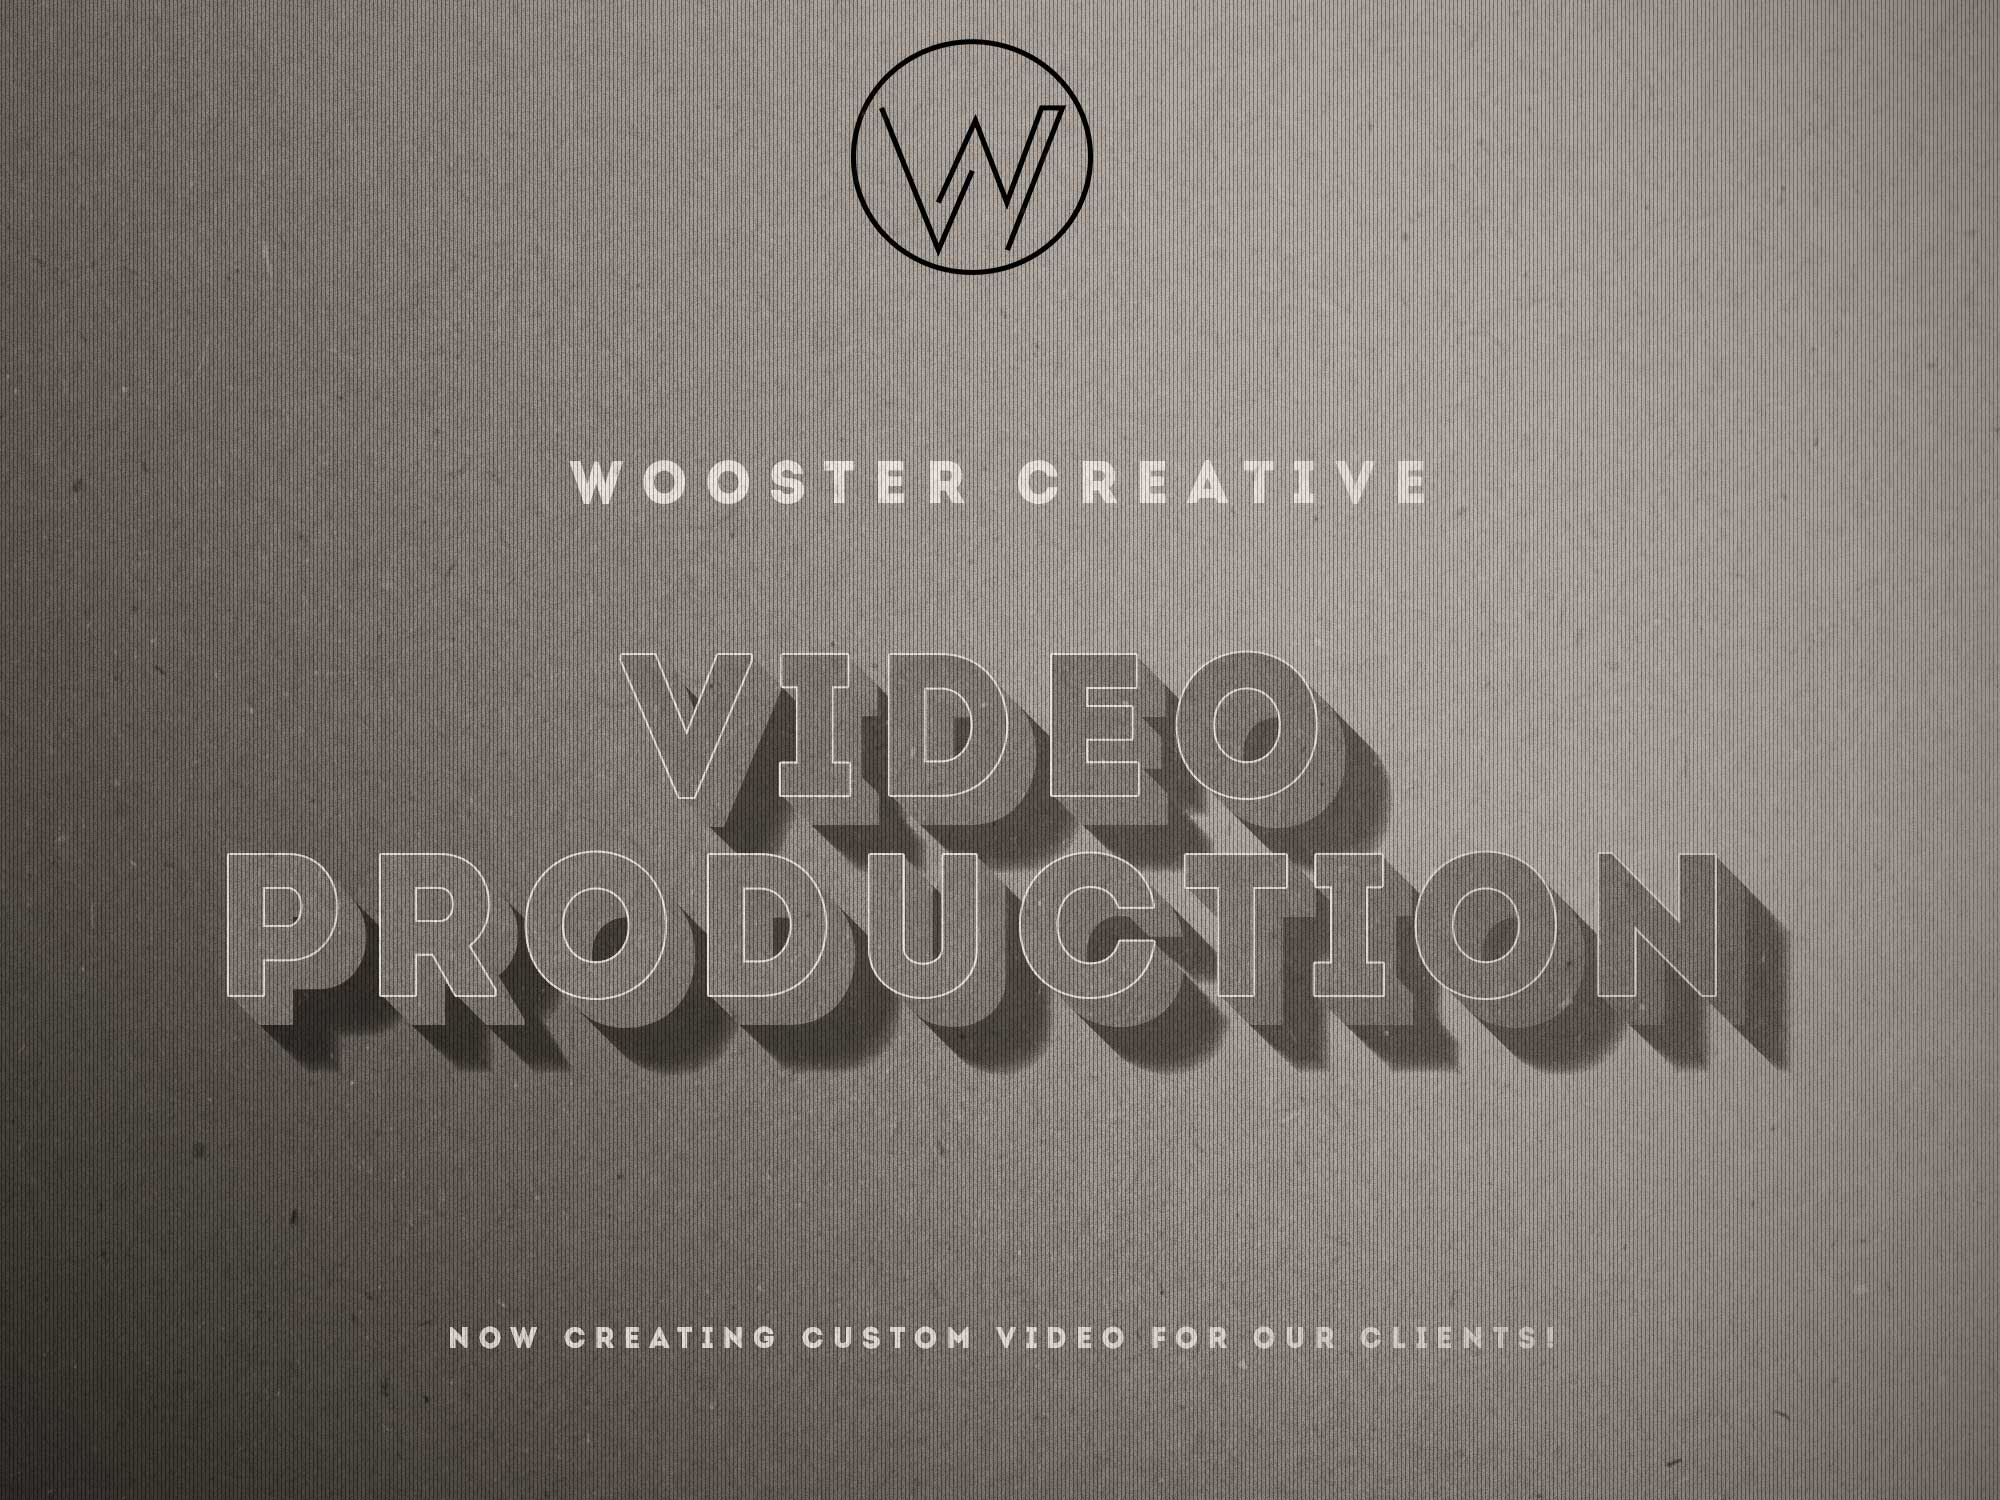 oklahoma video production - custom video production creative agency oklahoma city OK